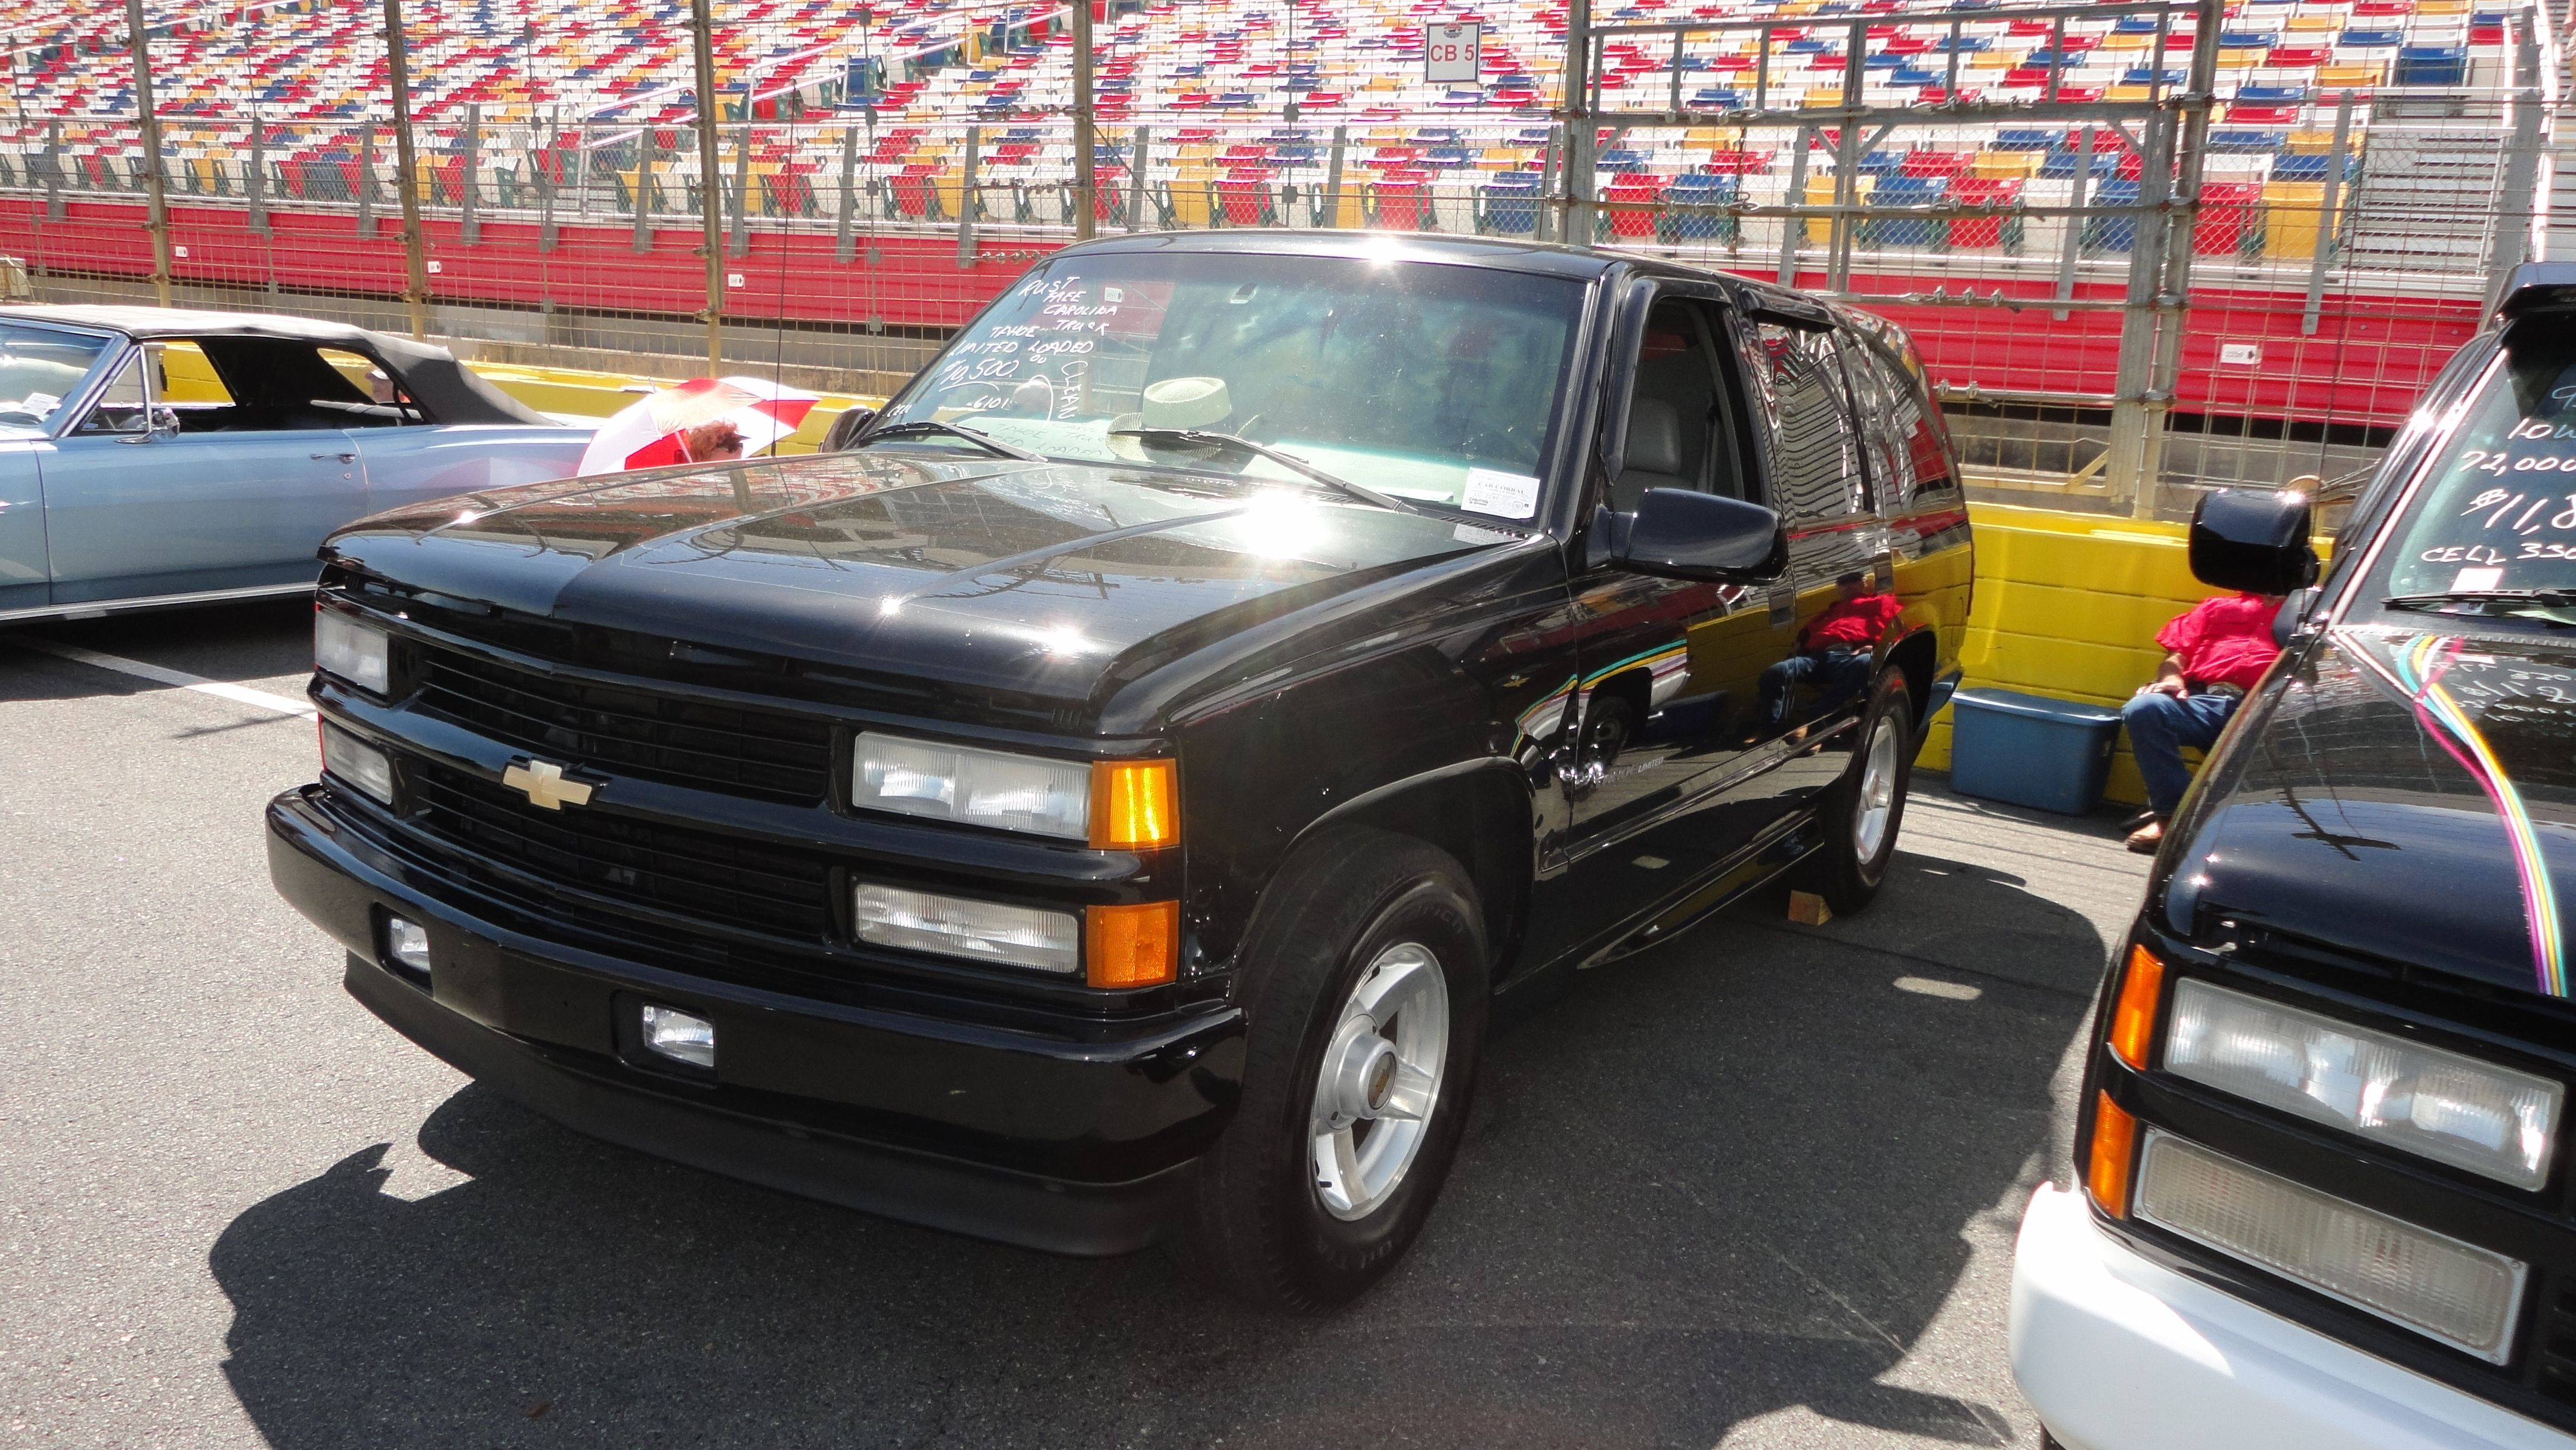 2000 chevrolet tahoe limited during auto fair at charlotte motor speedway [ 4320 x 2432 Pixel ]